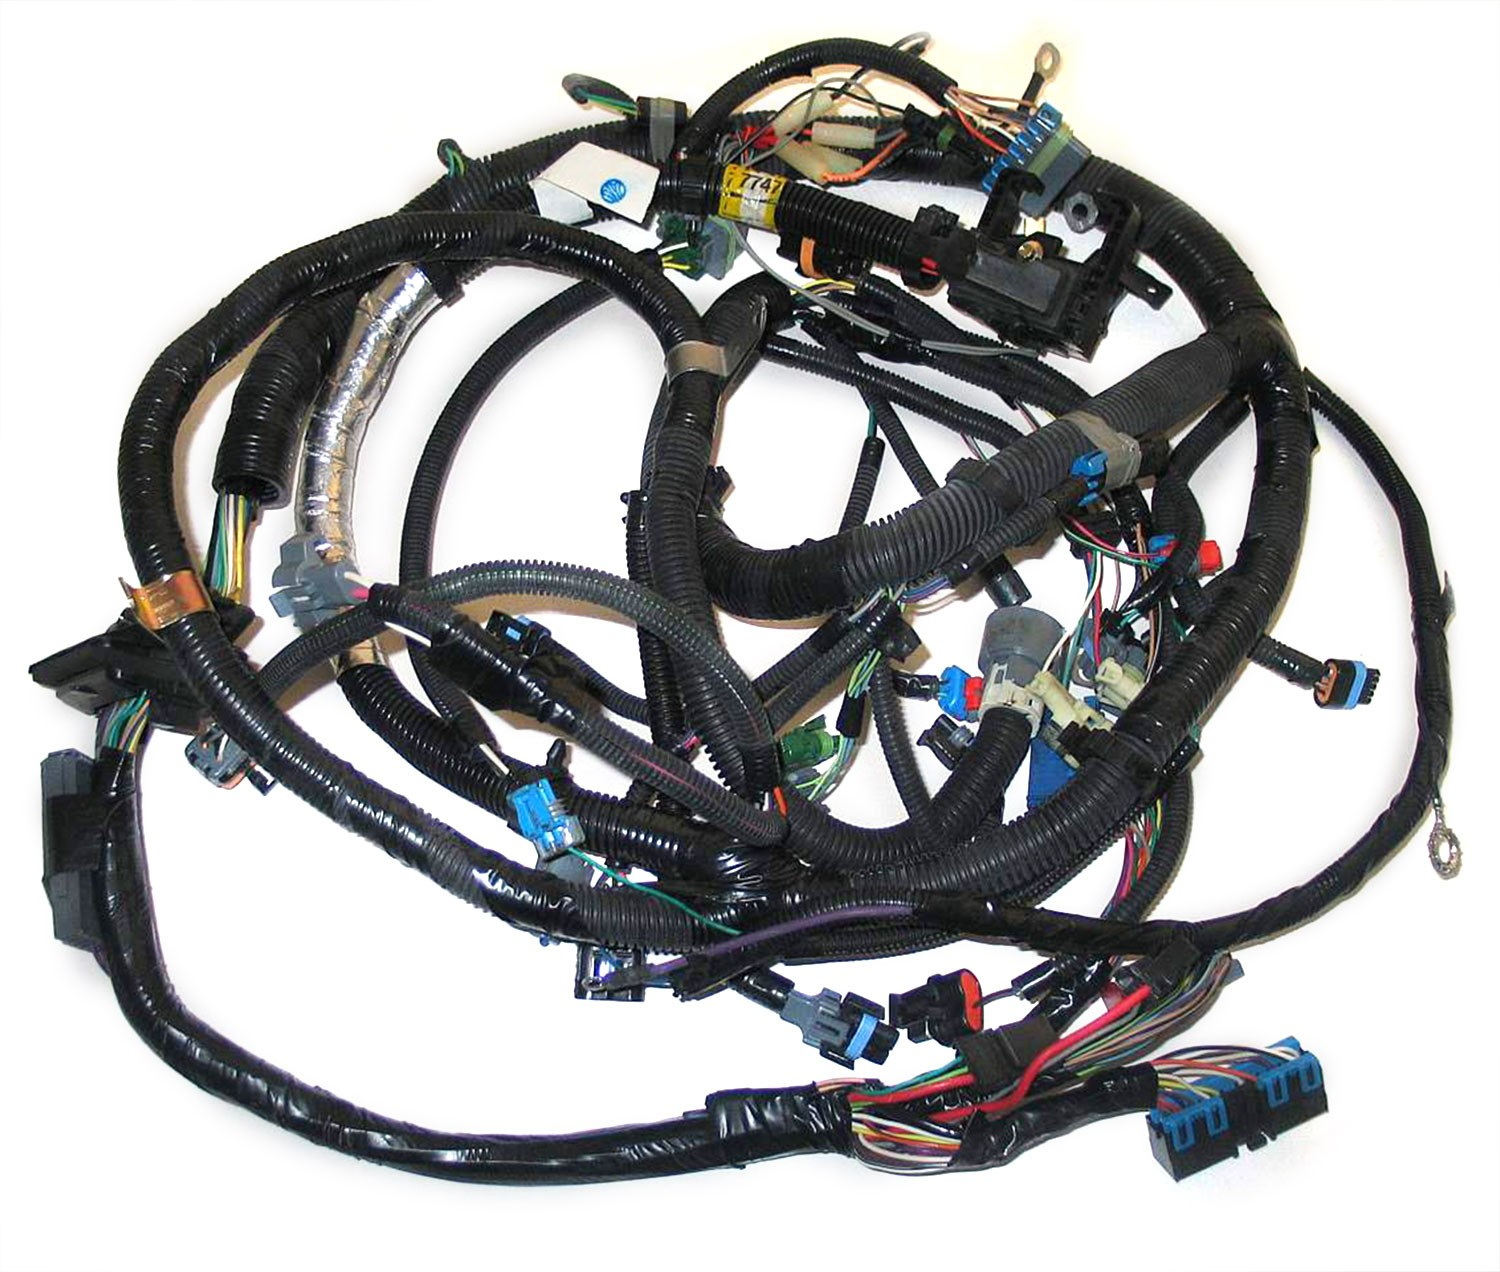 hight resolution of 12167747 oem tbi engine wire harness for 5 0l 305 5 7l 350 gm rh store partshighway com gm tbi wiring harness chevy tbi system